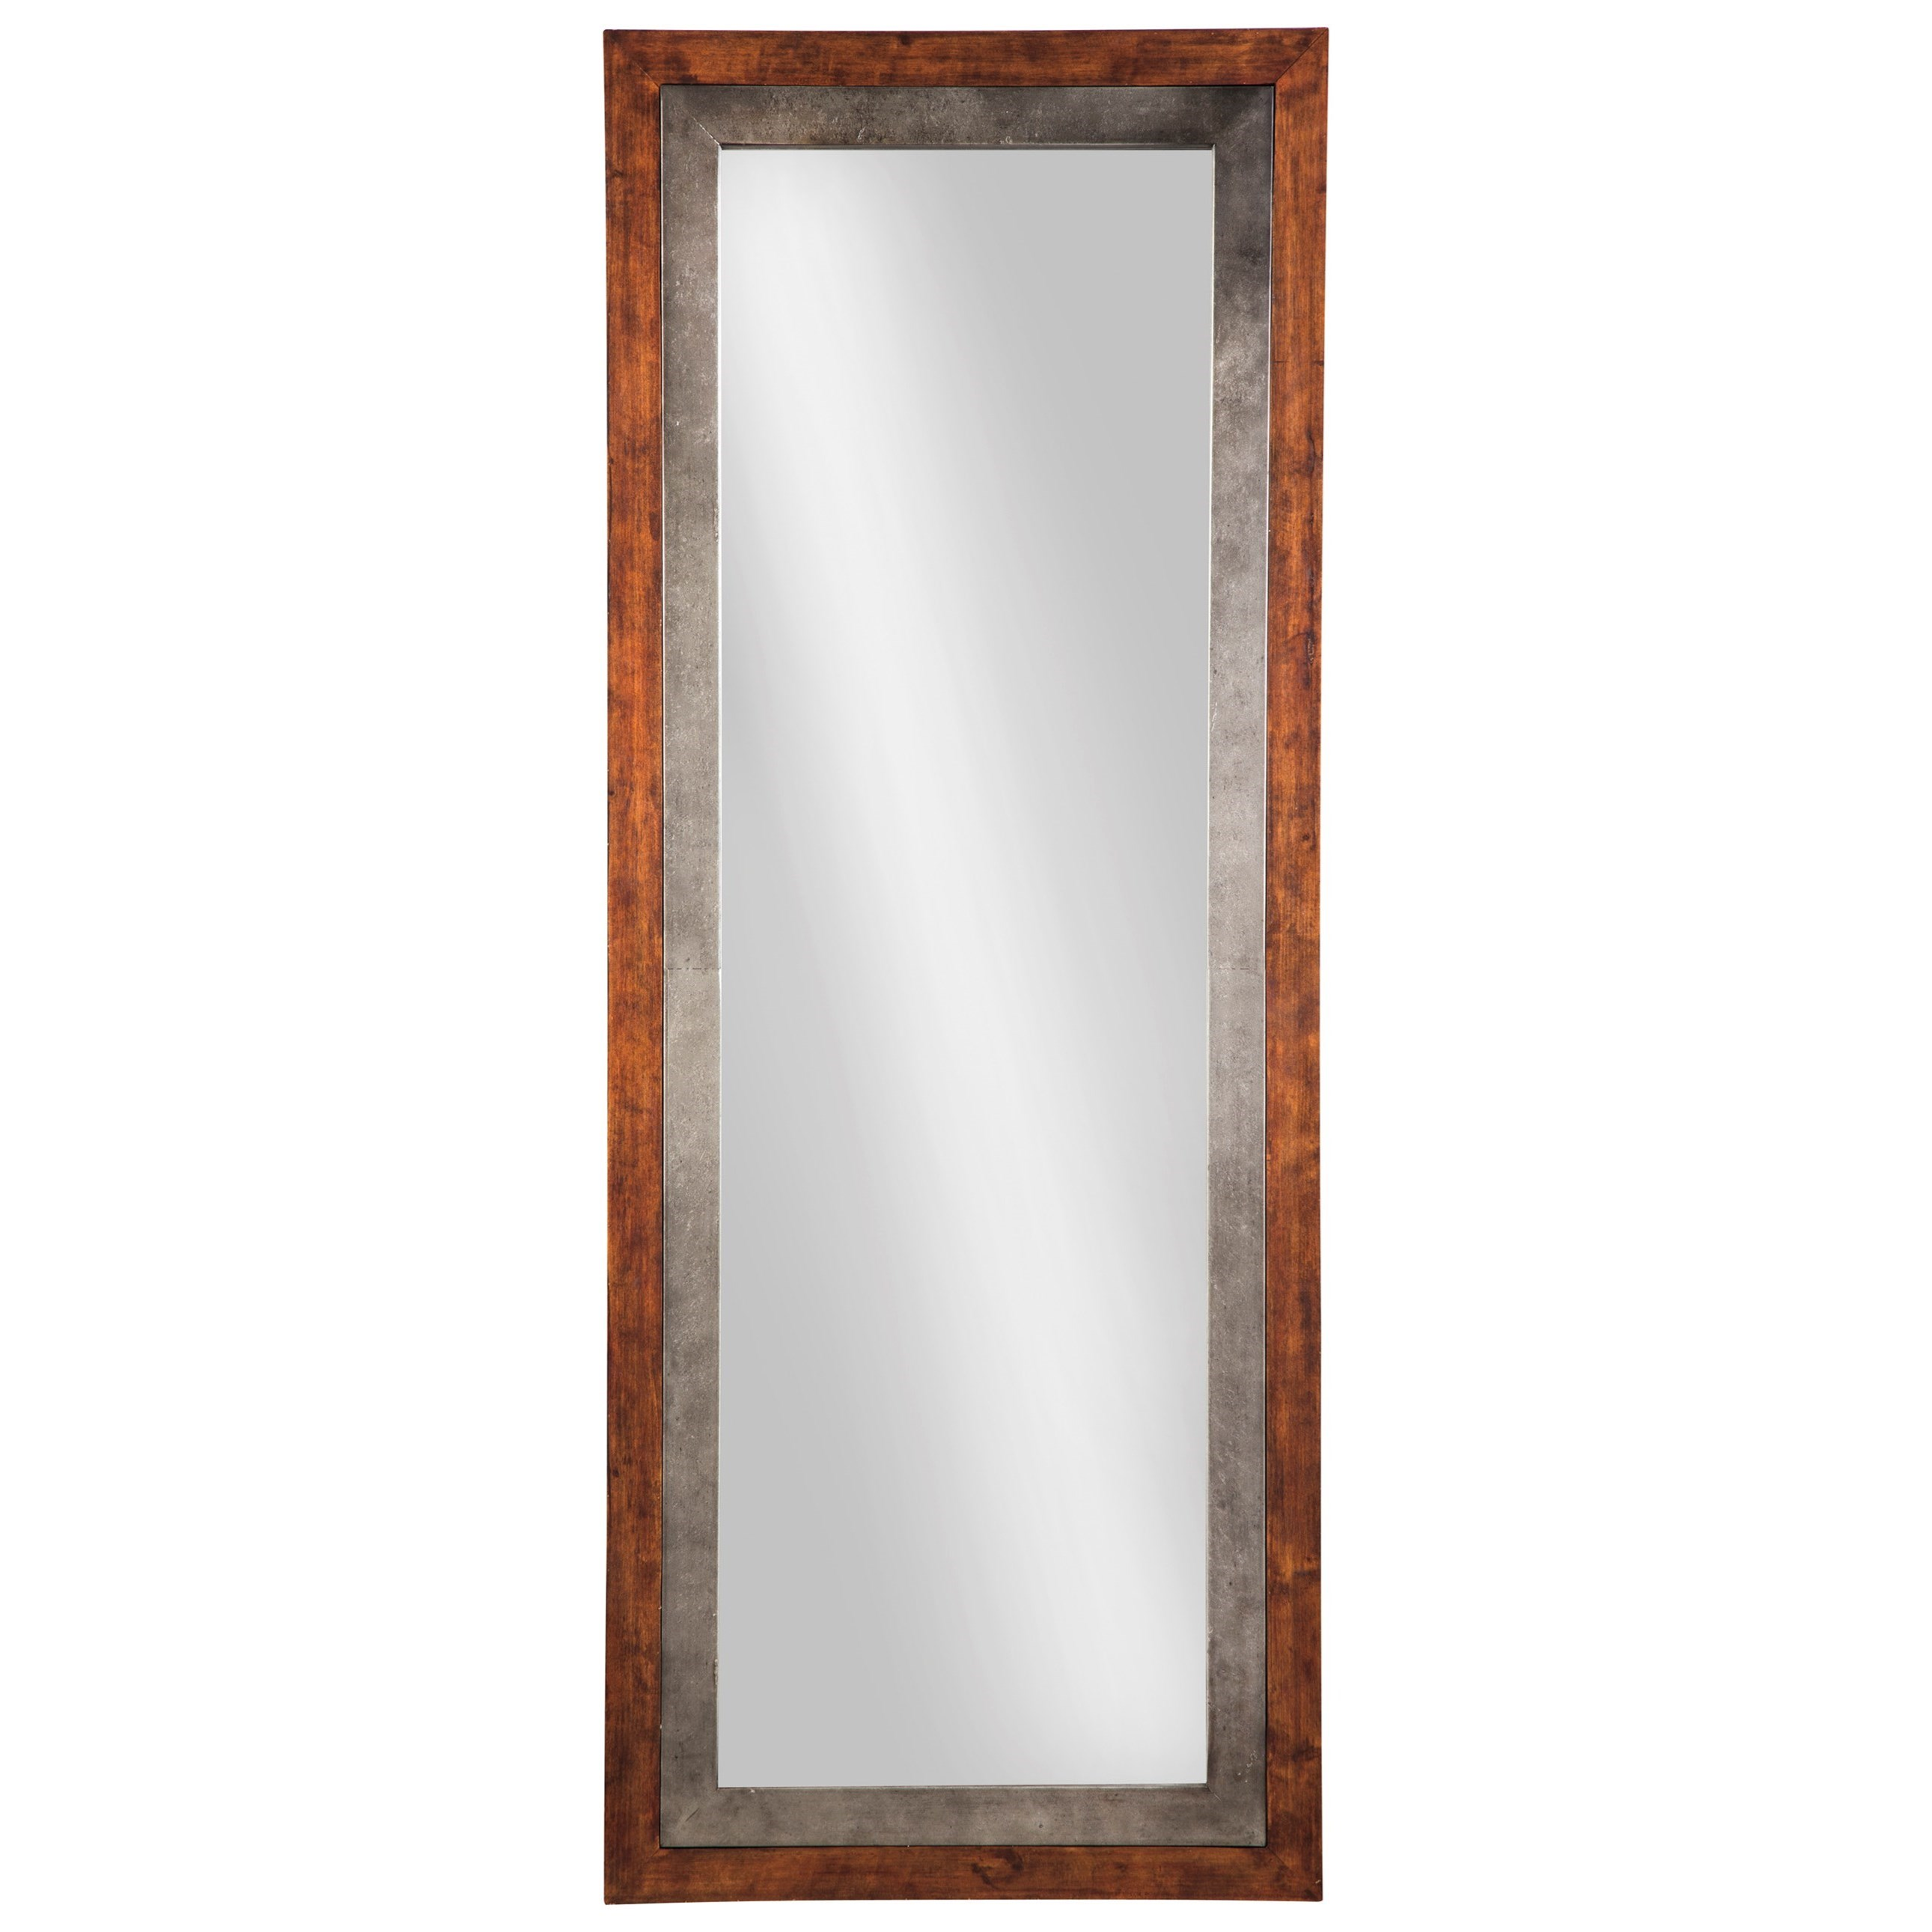 Signature design by ashley accent mirrors niah brown for Accent mirrors